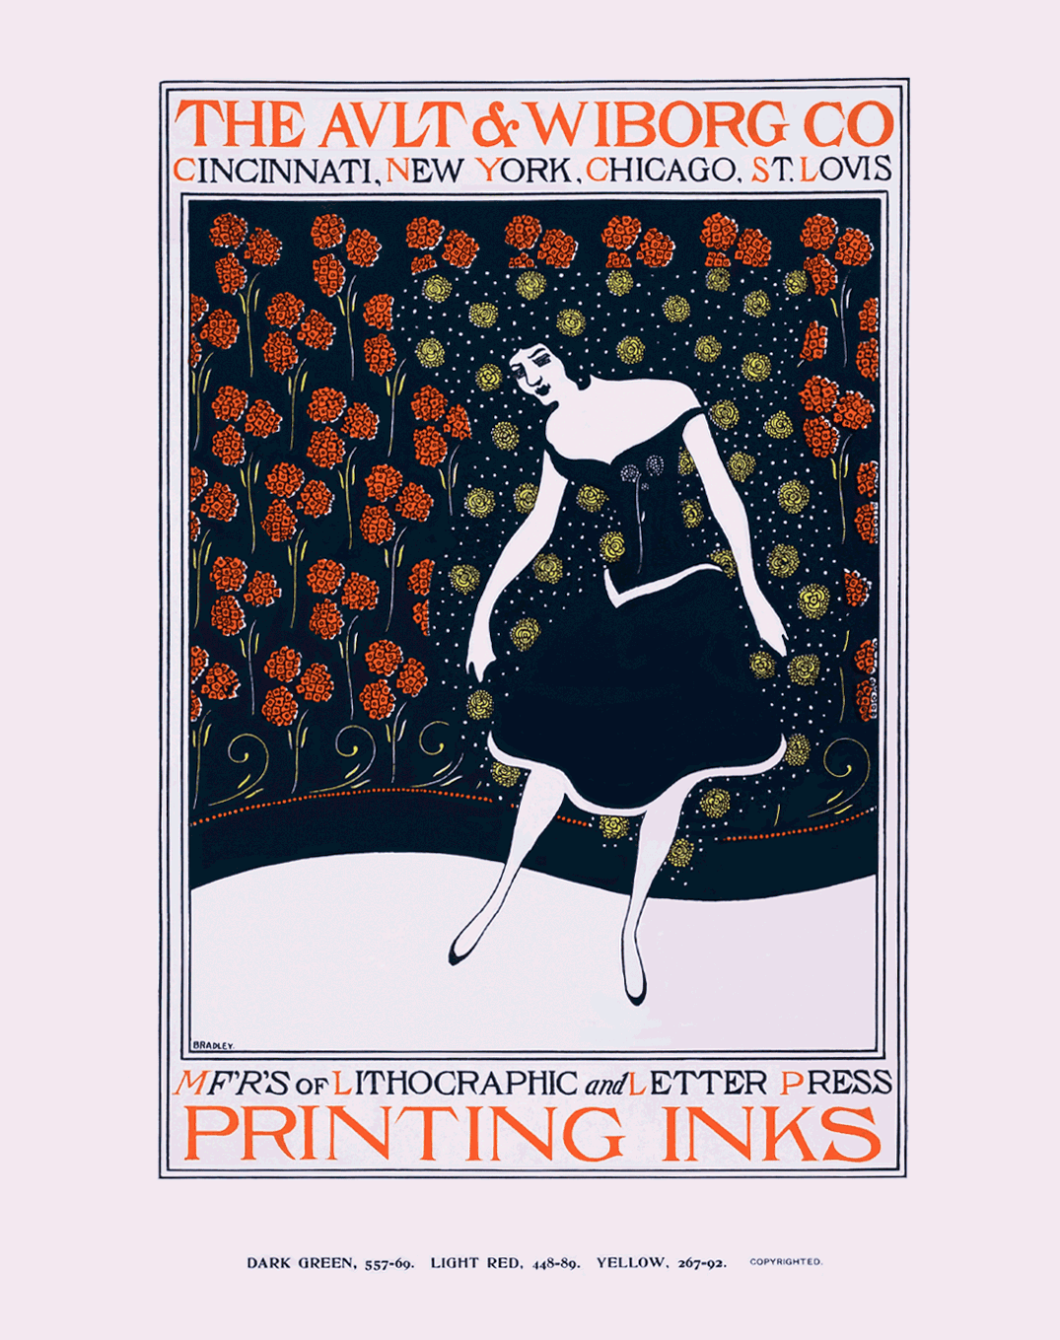 Ault and Wiborg Makers of FIne Printing and Lithographic Inks. Poster Series 1900